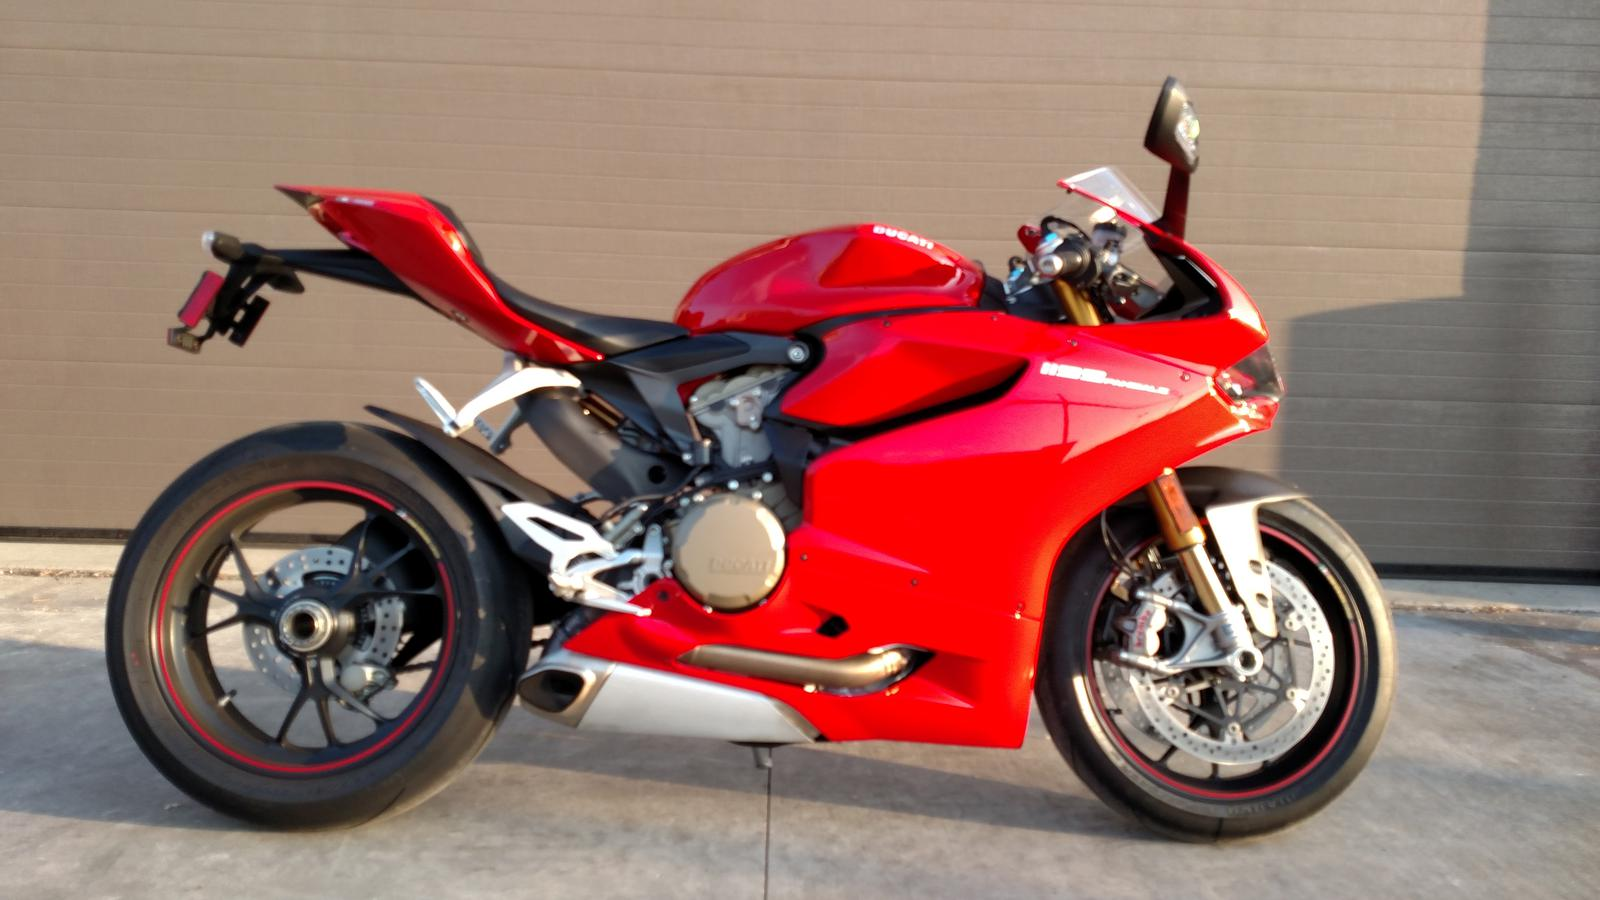 2012 Ducati PANIGALE 1199S WITH ABS, motorcycle listing